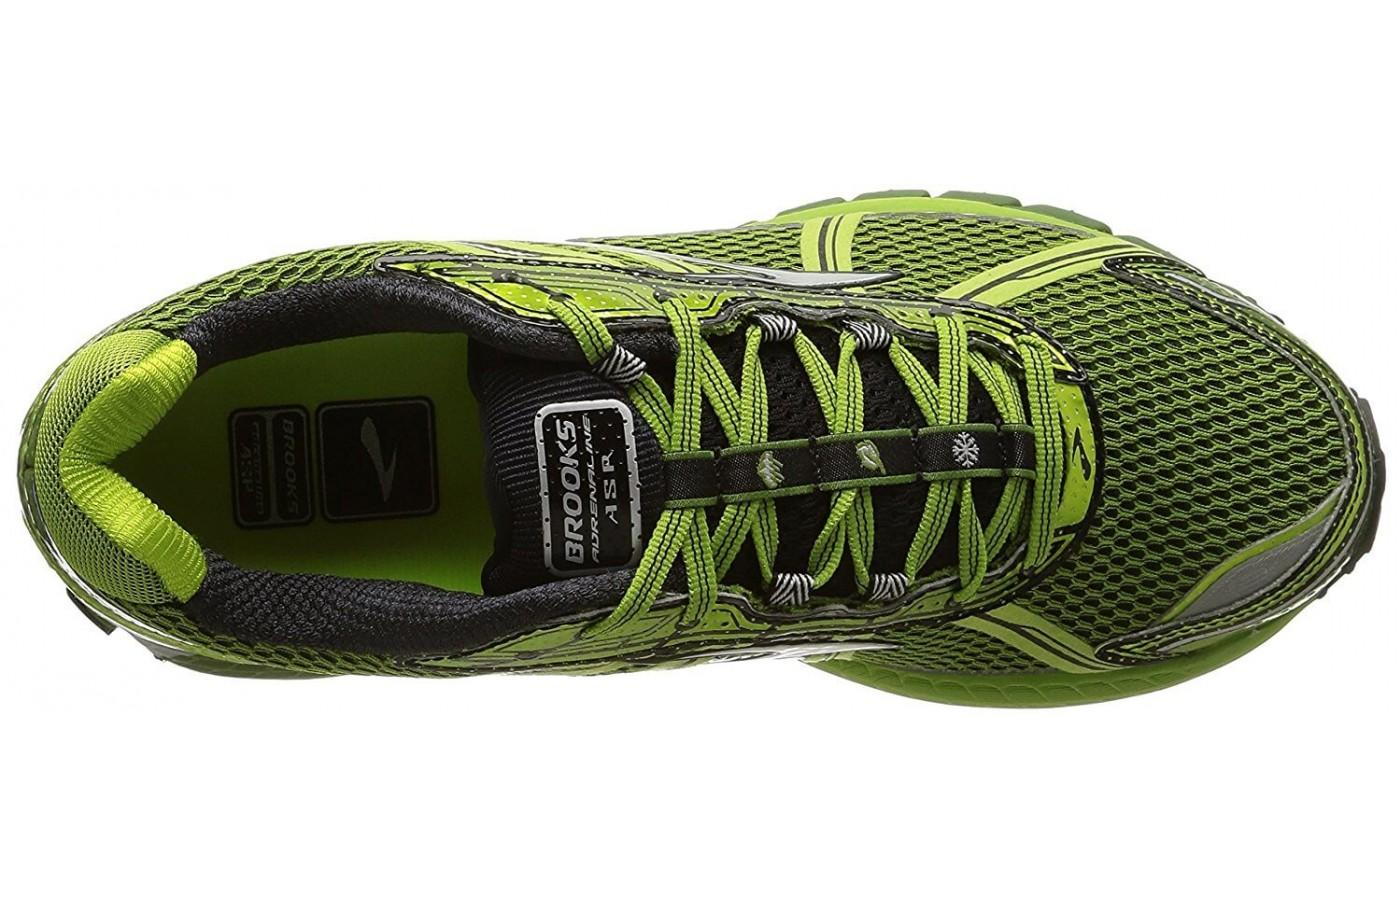 the Brooks Adrenaline ASR 12 is has a water repellent upper